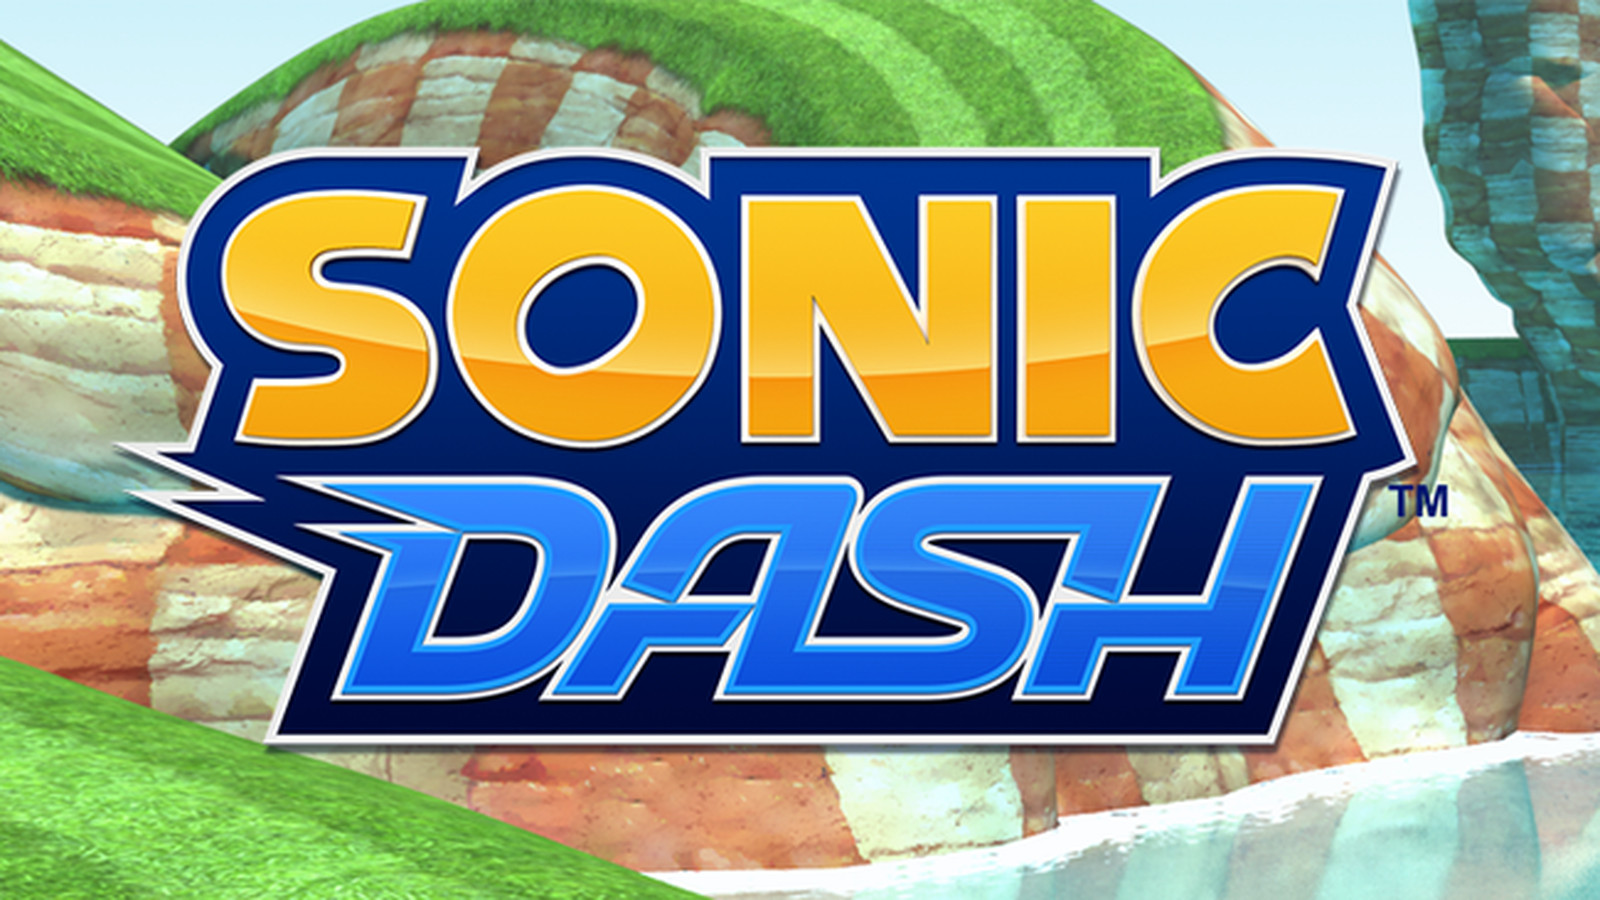 Sonic Dash endless runner headed to mobile 'soon' - Polygon